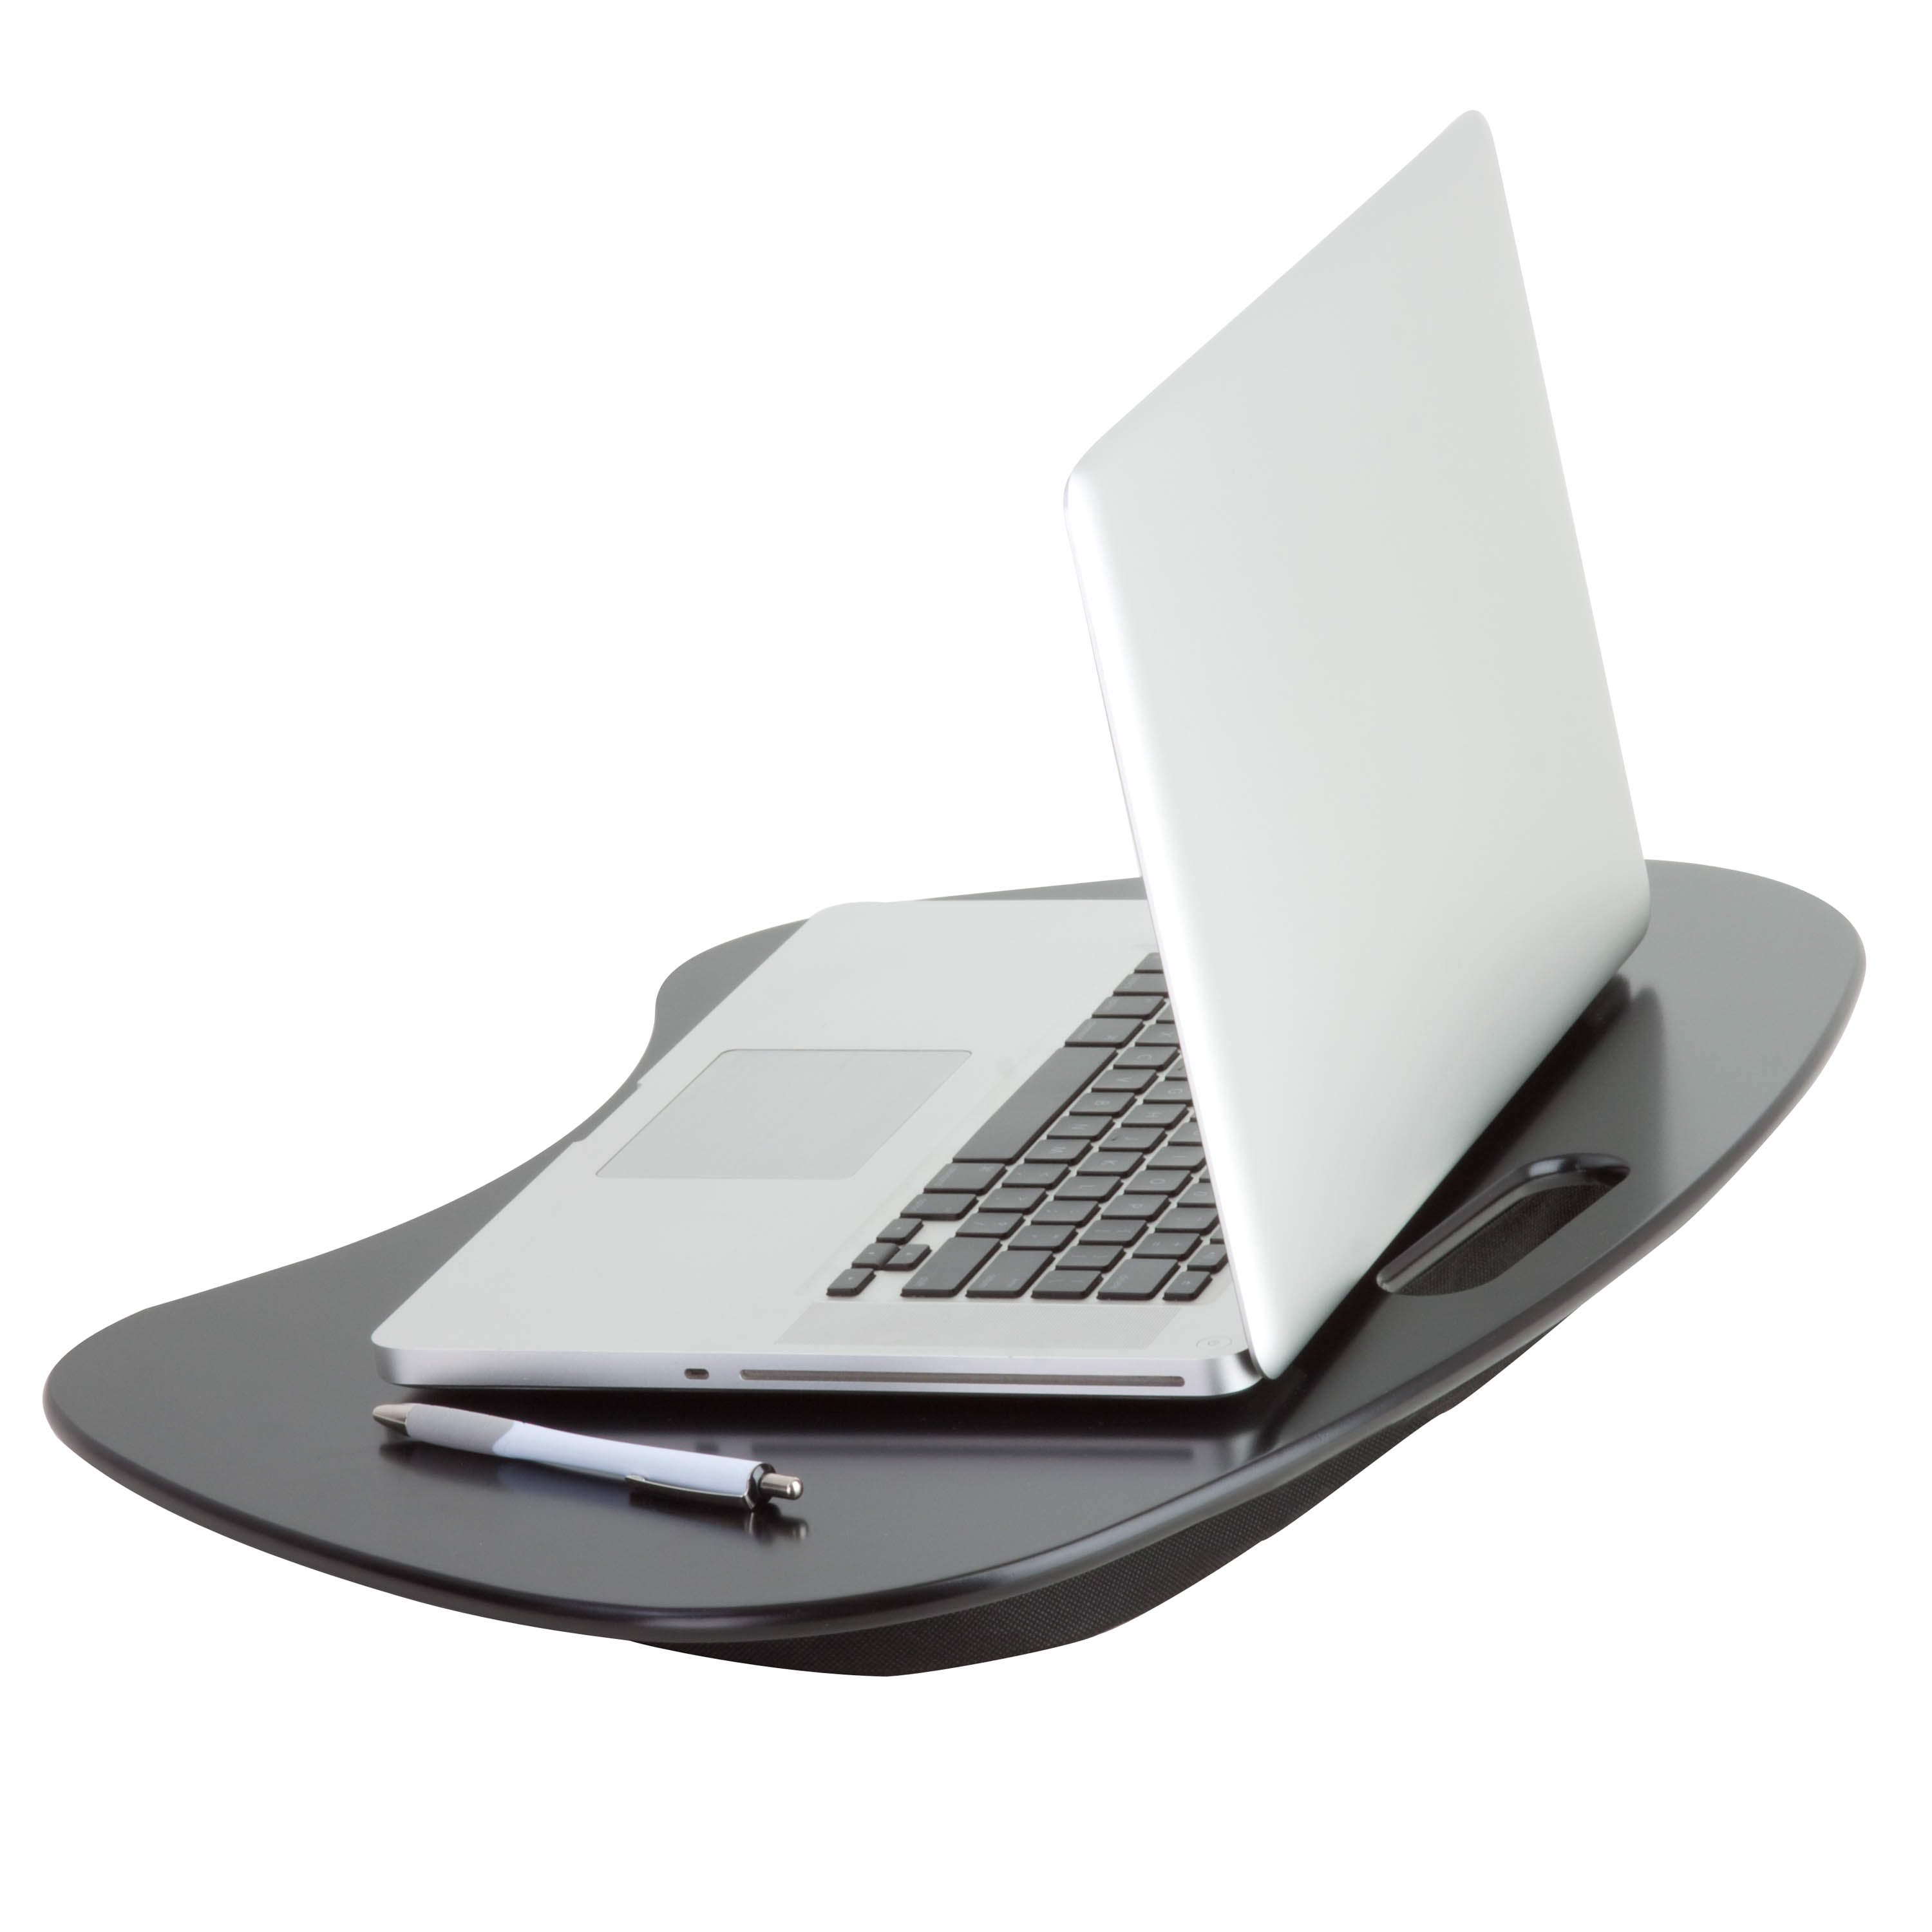 Honey Can Do Lap Desk With Built In Handle And Cushion, Multicolor by Honey Can Do